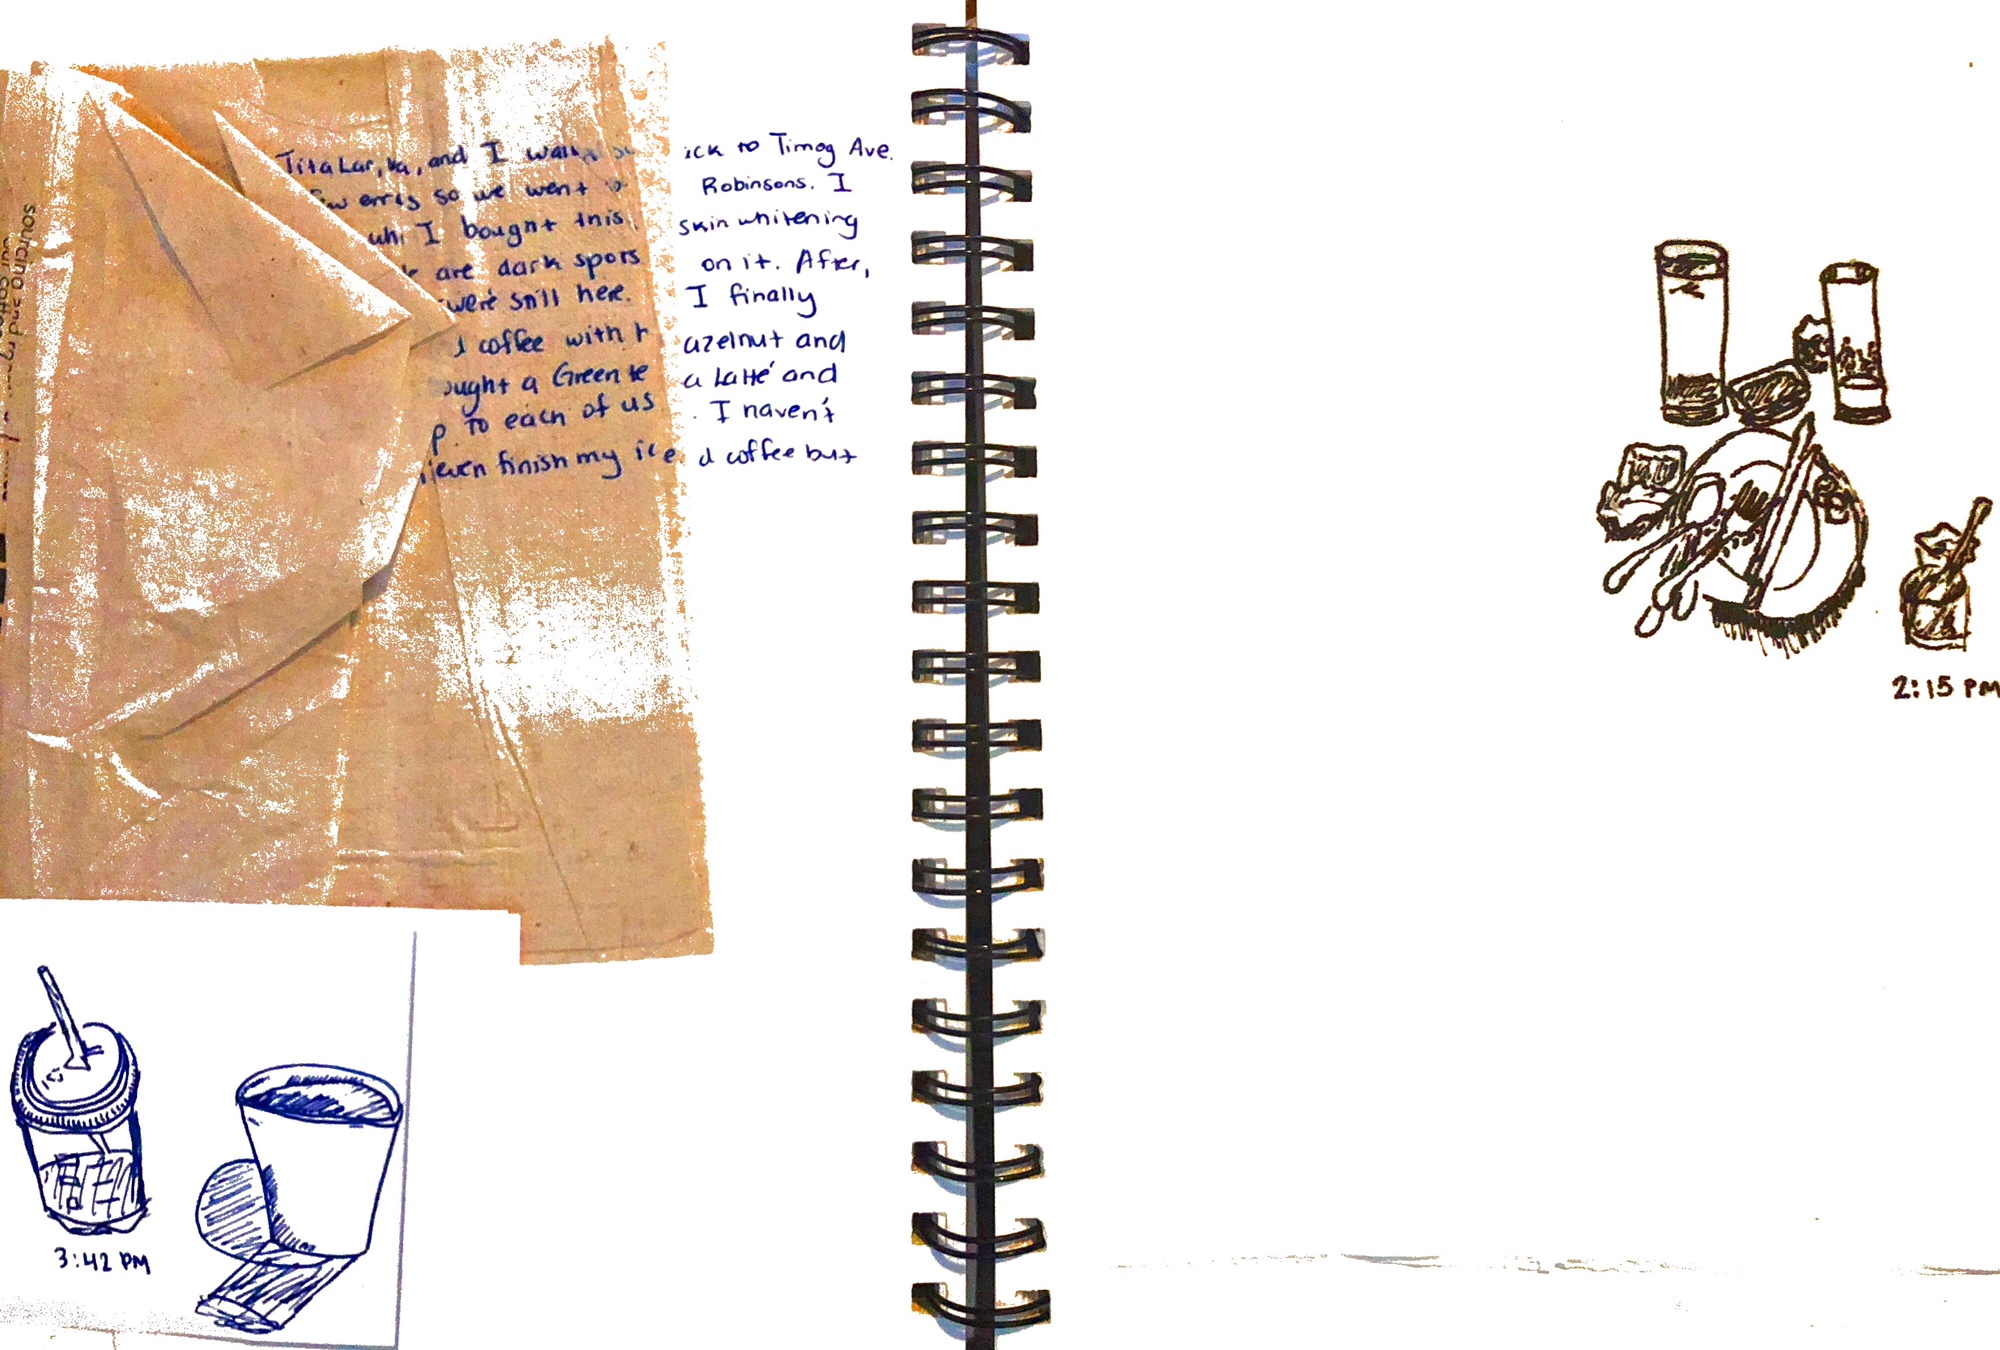 Journal Scans page 10.JPG